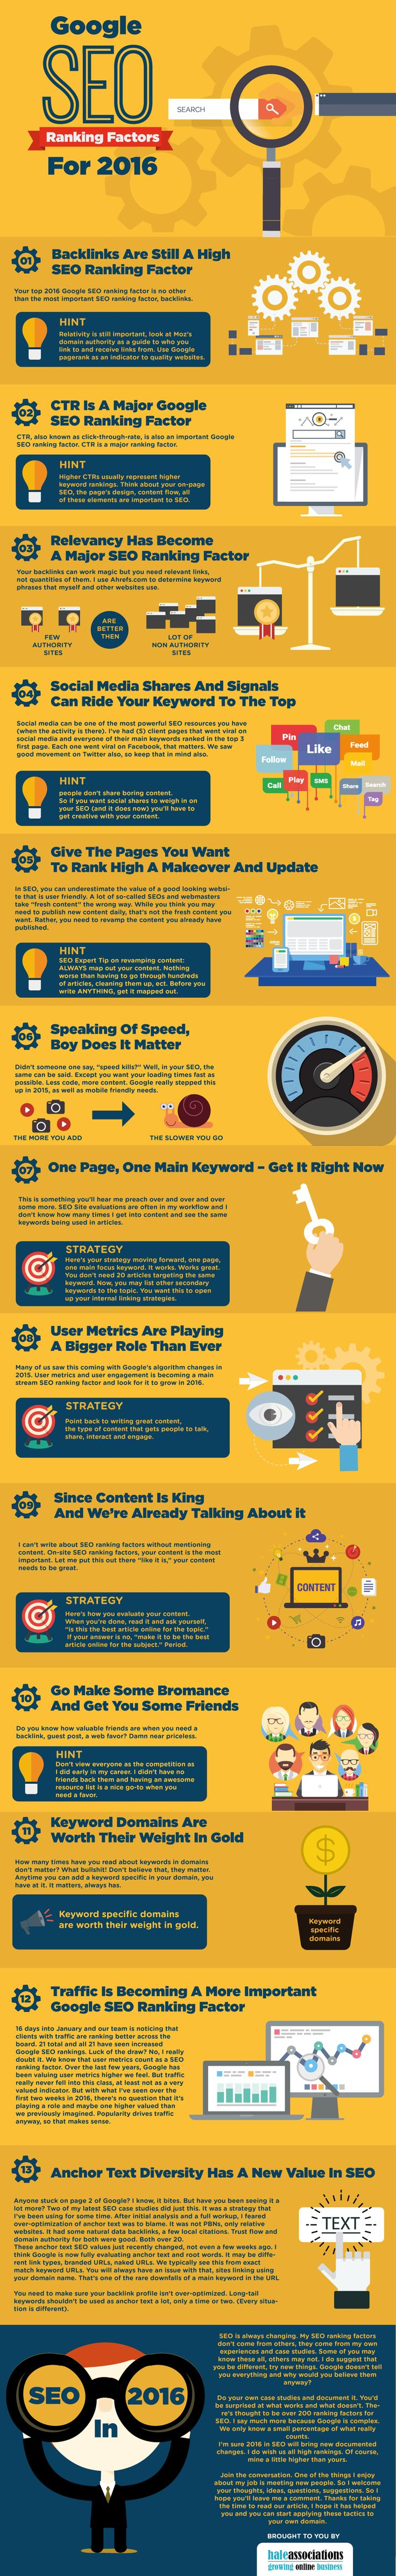 Google SEO Ranking Factors for 2016